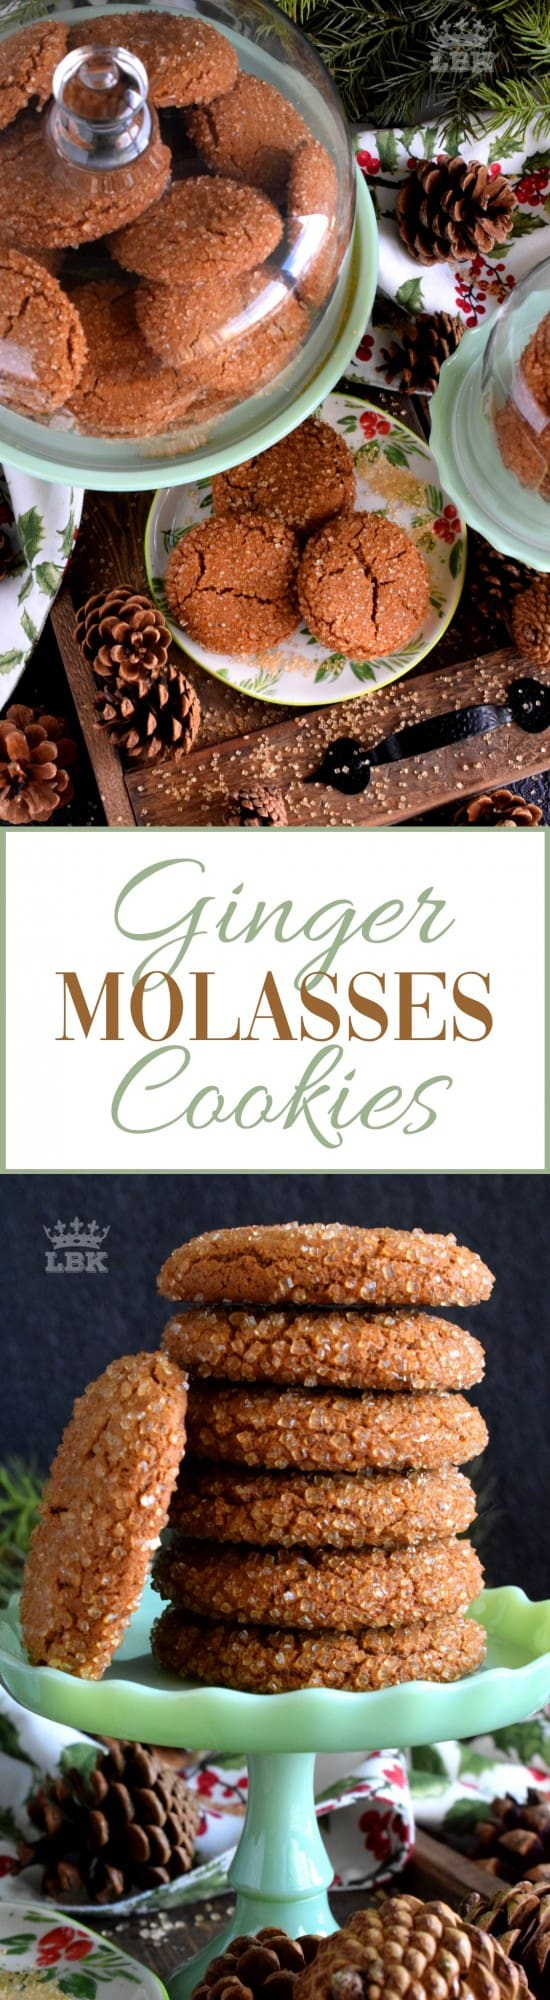 Ginger Molasses Cookies - These Ginger Molasses Cookies are made with classic Christmas ingredients that flood the senses with thoughts and memories of home. #ginger #molasses #cookies #christmas #traditional #holiday #oldfashioned